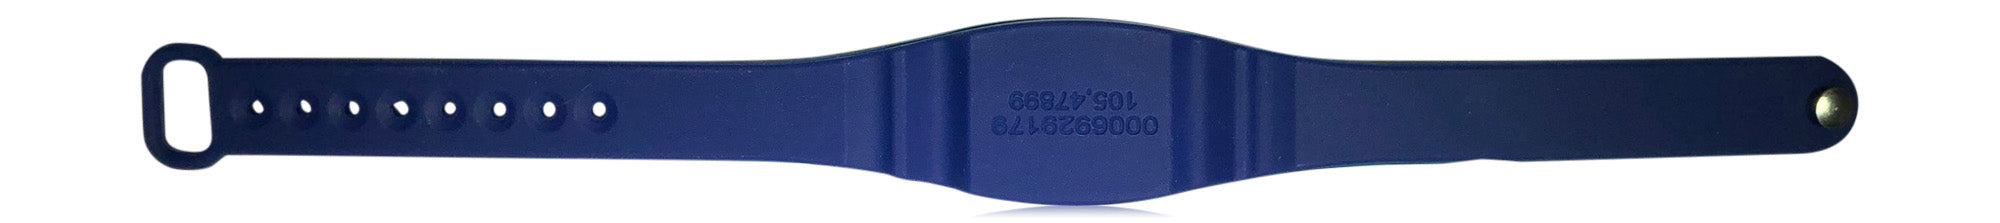 2 Blue Adjustable 26 Bit EM Proximity Wristbands